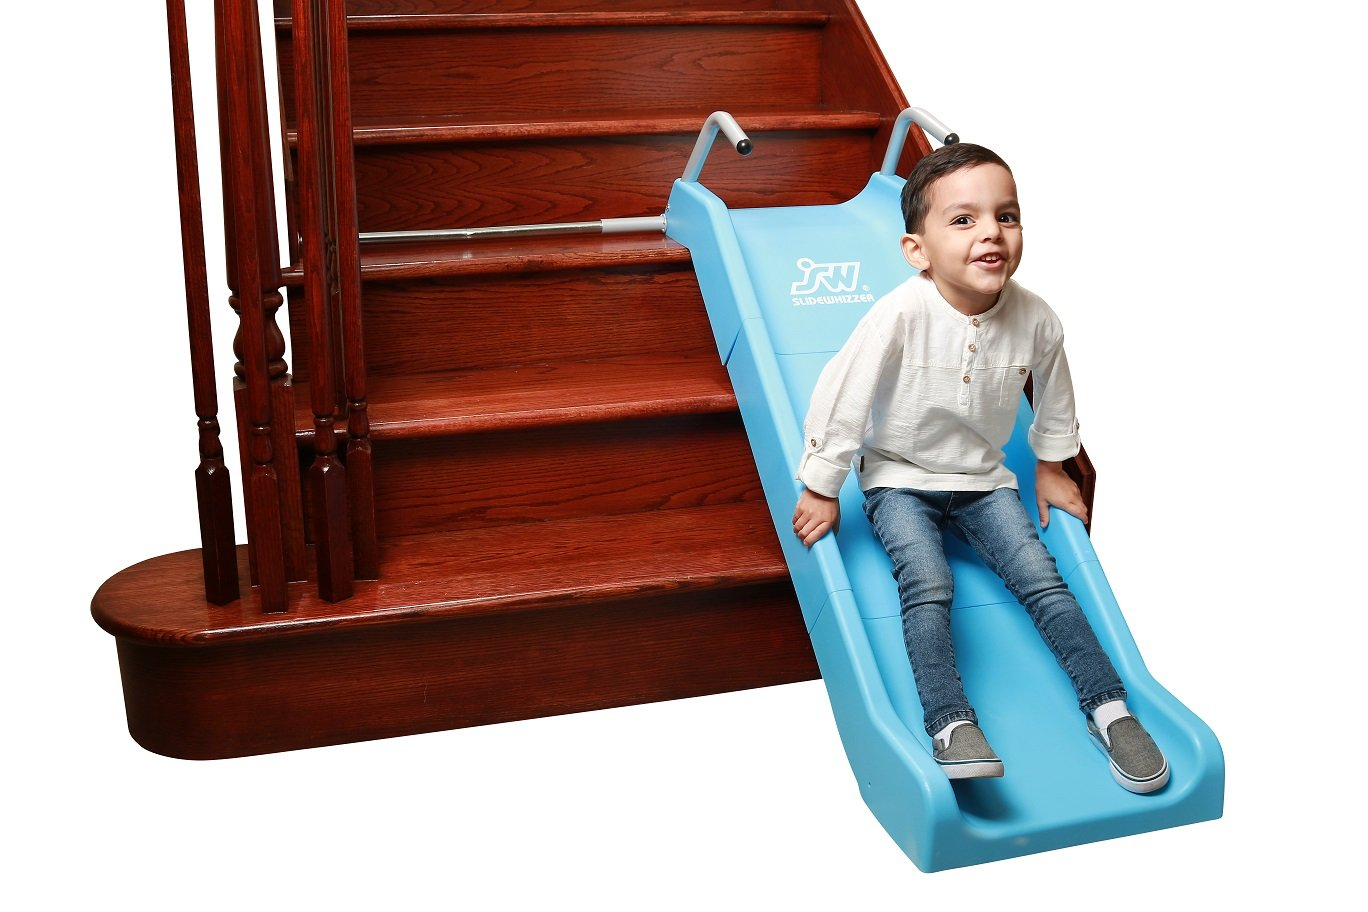 Indoor Stair Slide Toy playset Toys – Kids/Toddler/Boys/Girls Safe Playground Children on Stairs – Parents/Grandparents Gifts to Your Precious Ones by SLIDEWHIZZER (Image #3)